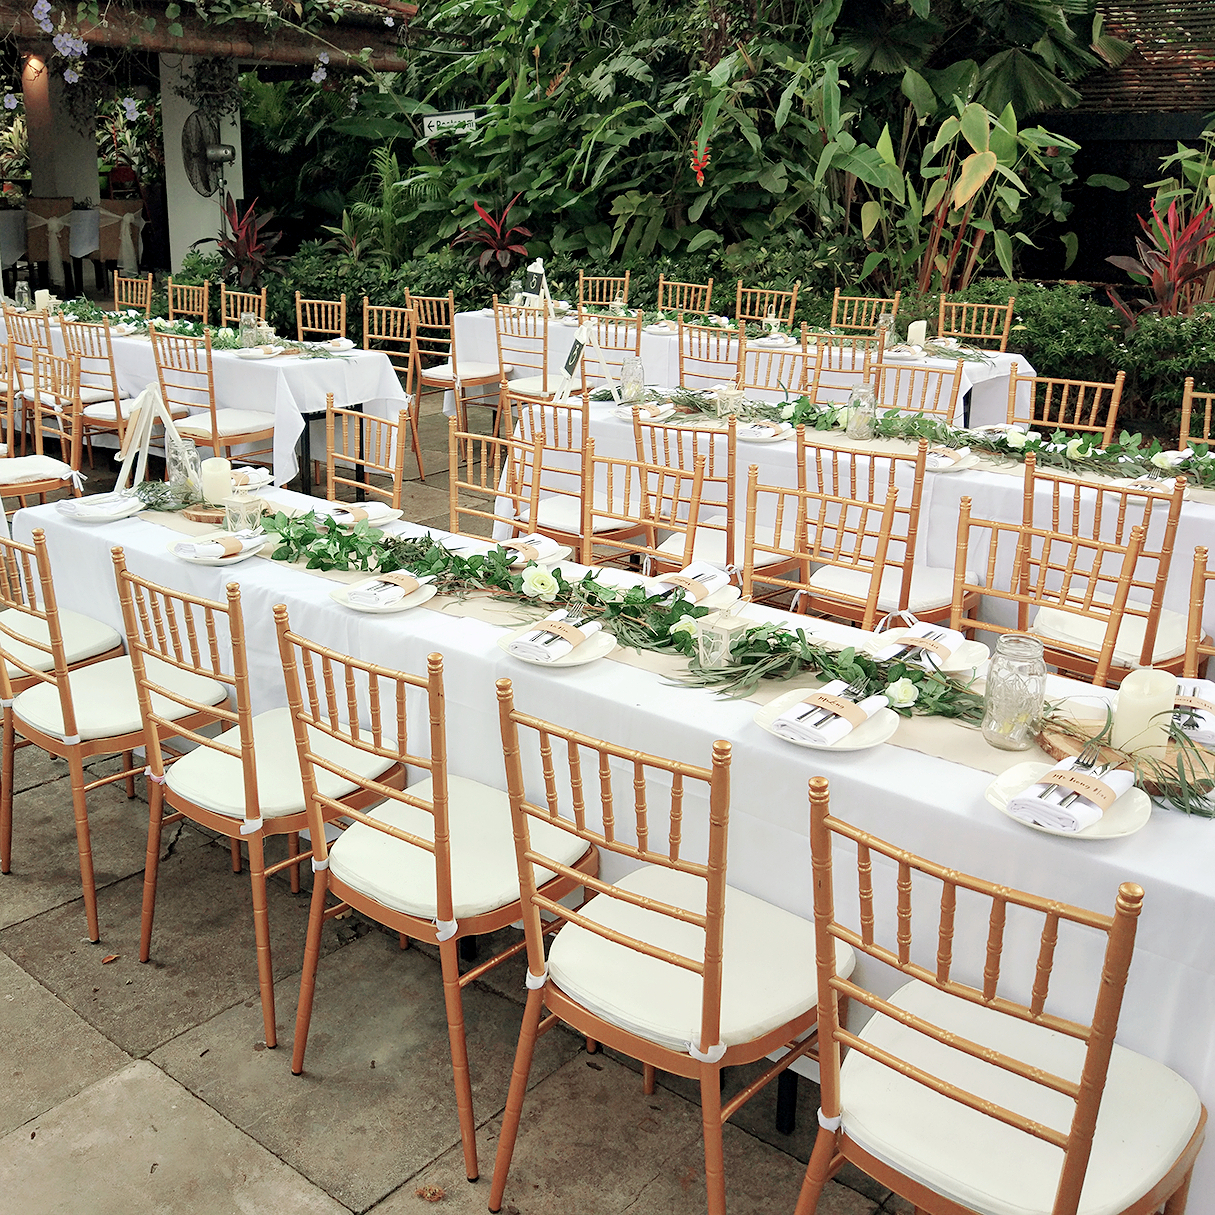 tiffany wedding chairs ciao portable high chair reviews gold rental with free usage of white cushion